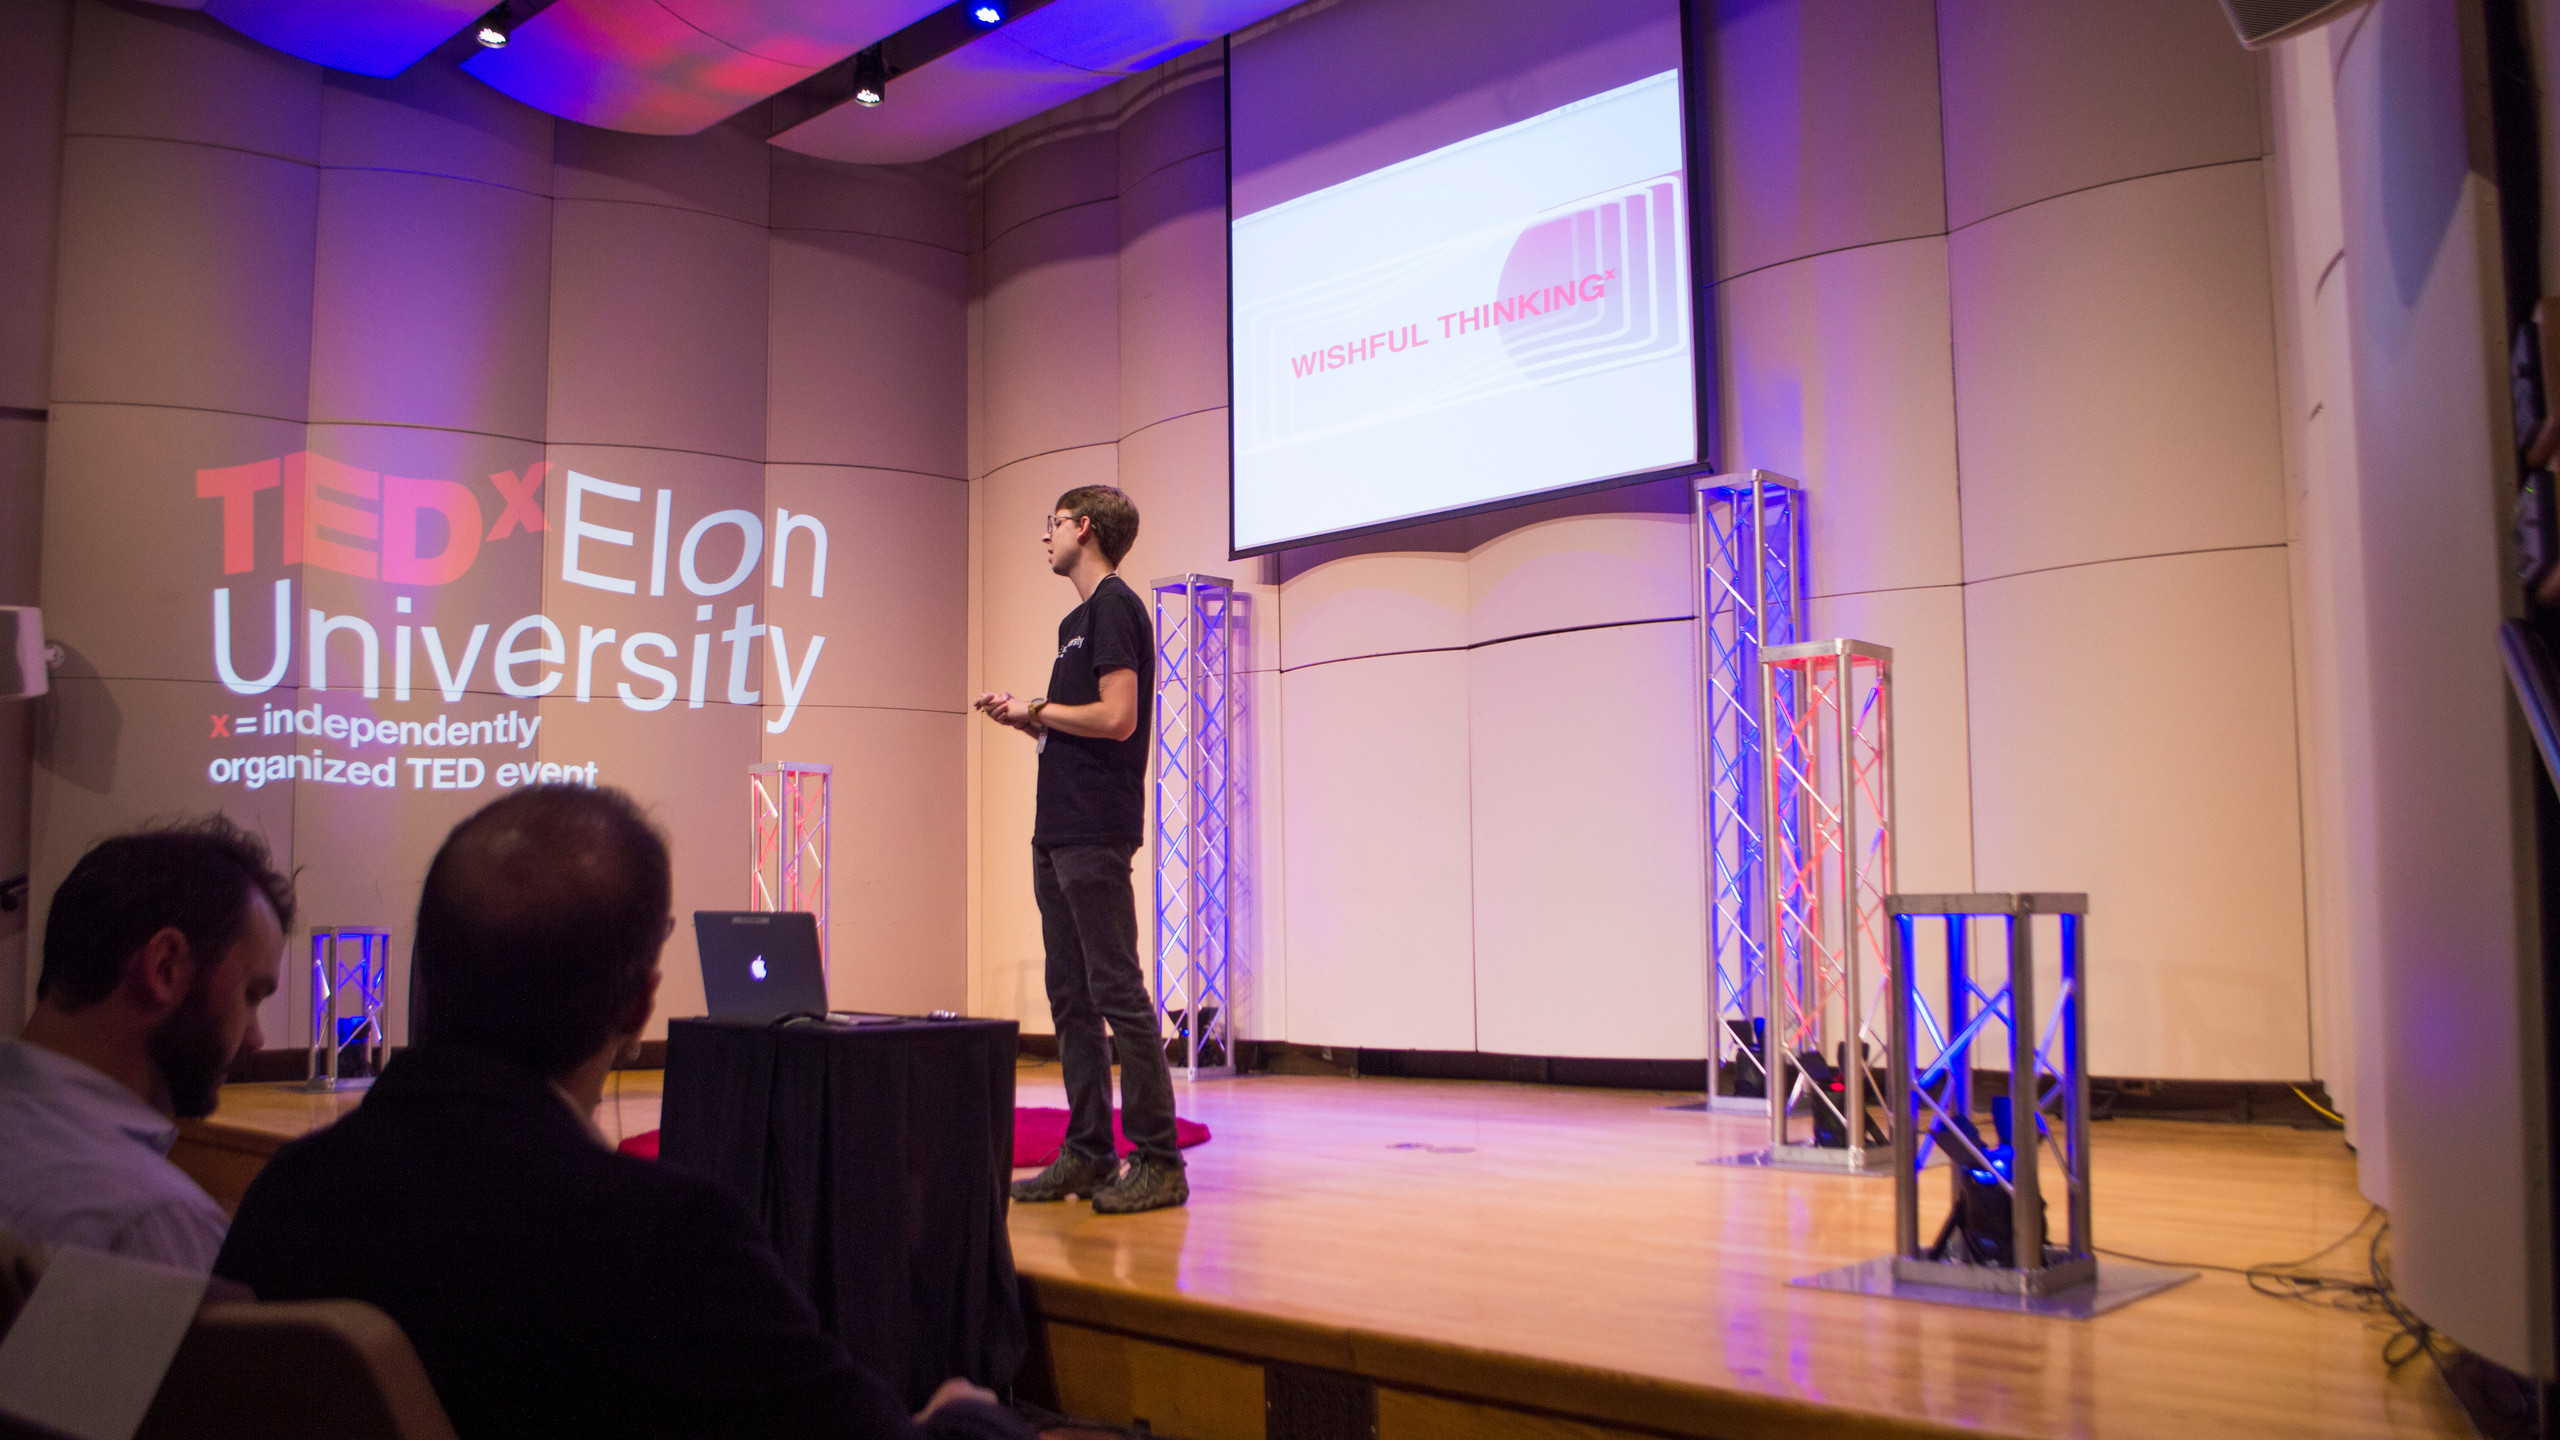 Ben Bridges, director for the TEDxElonUniversity conference, is a senior at Elon.